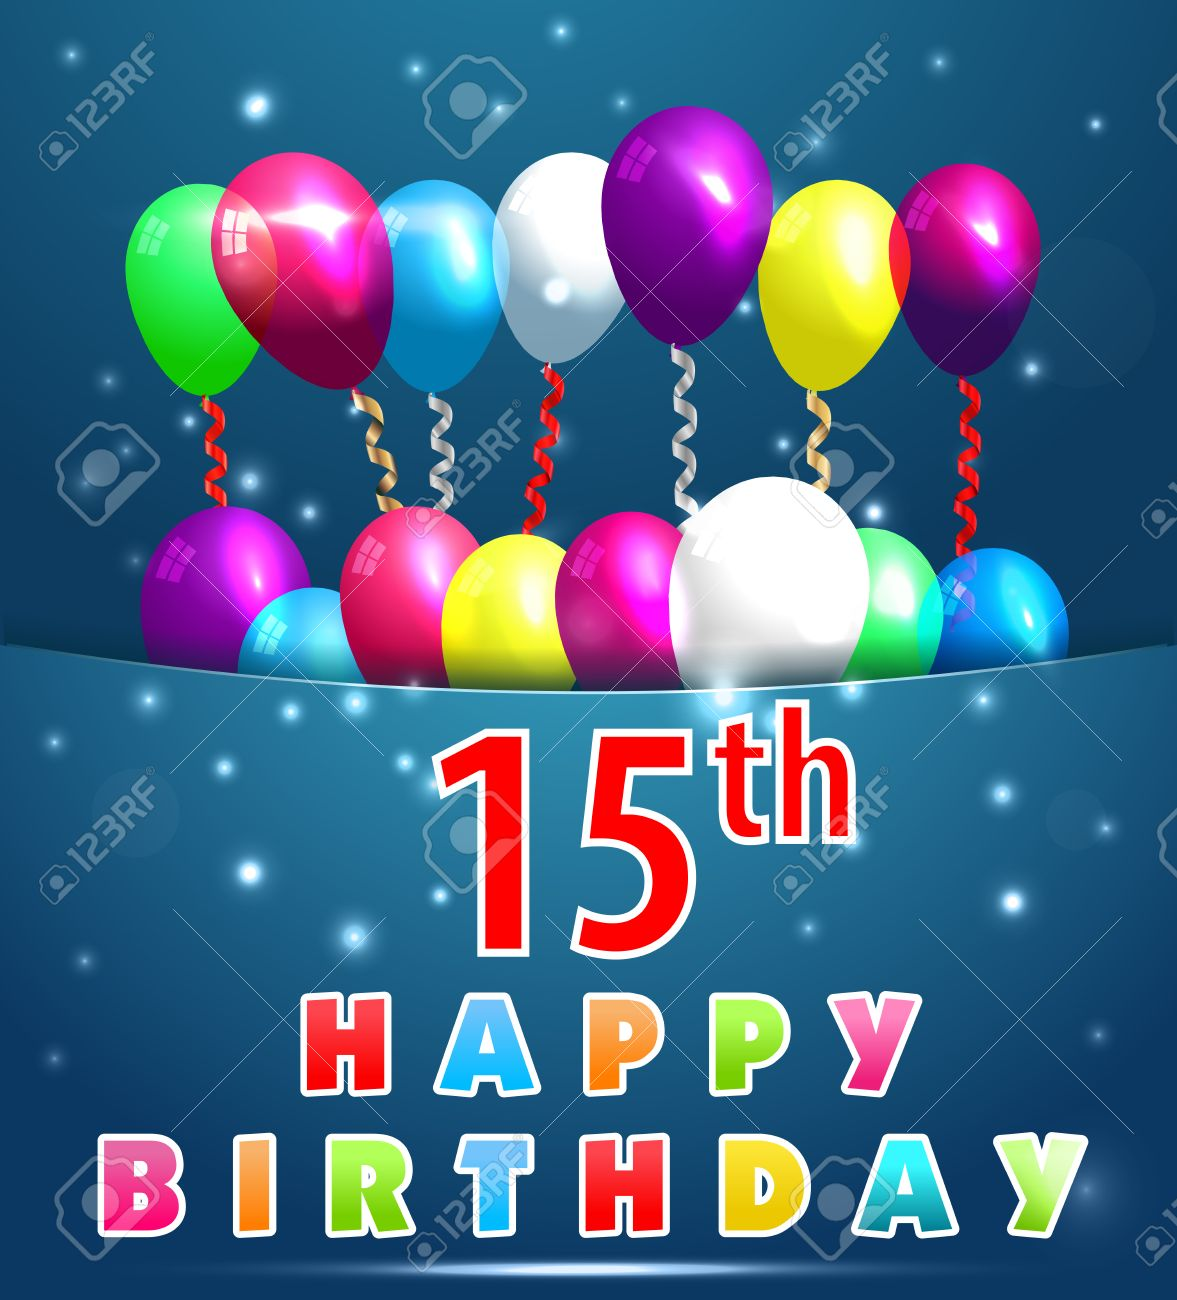 15 Year Happy Birthday Card With Balloons And Ribbons 15th Stock Vector